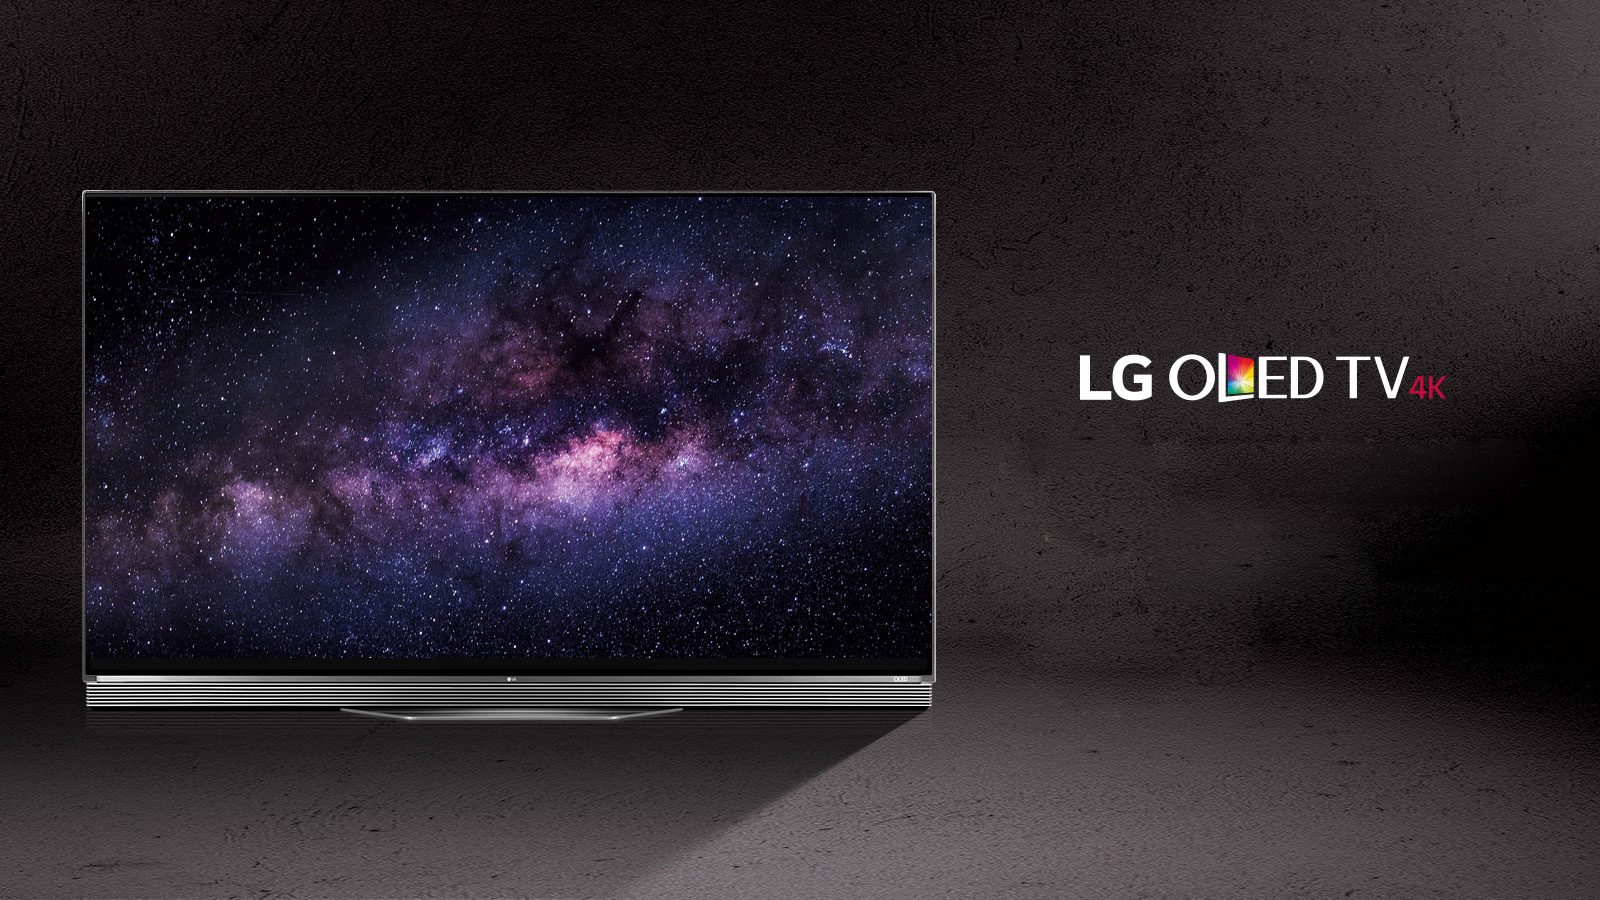 lg 55 inch 4k oled tv oled55e6t lg australia. Black Bedroom Furniture Sets. Home Design Ideas